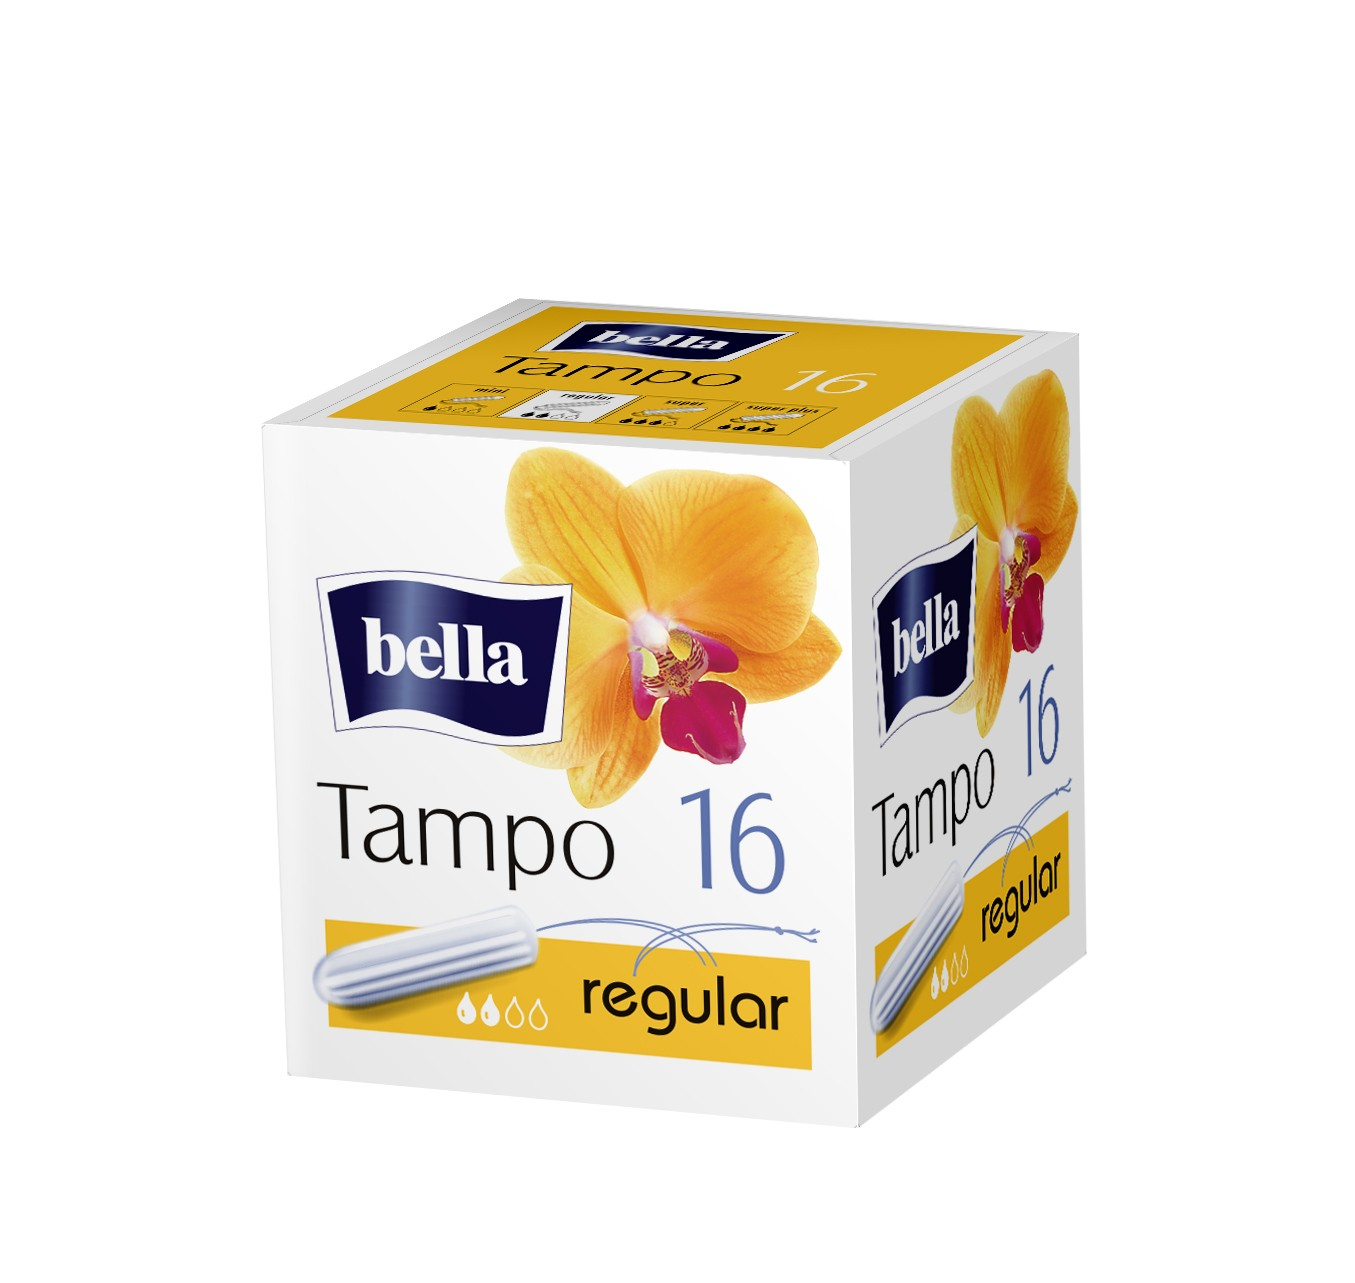 Bella Tampoo - Regular